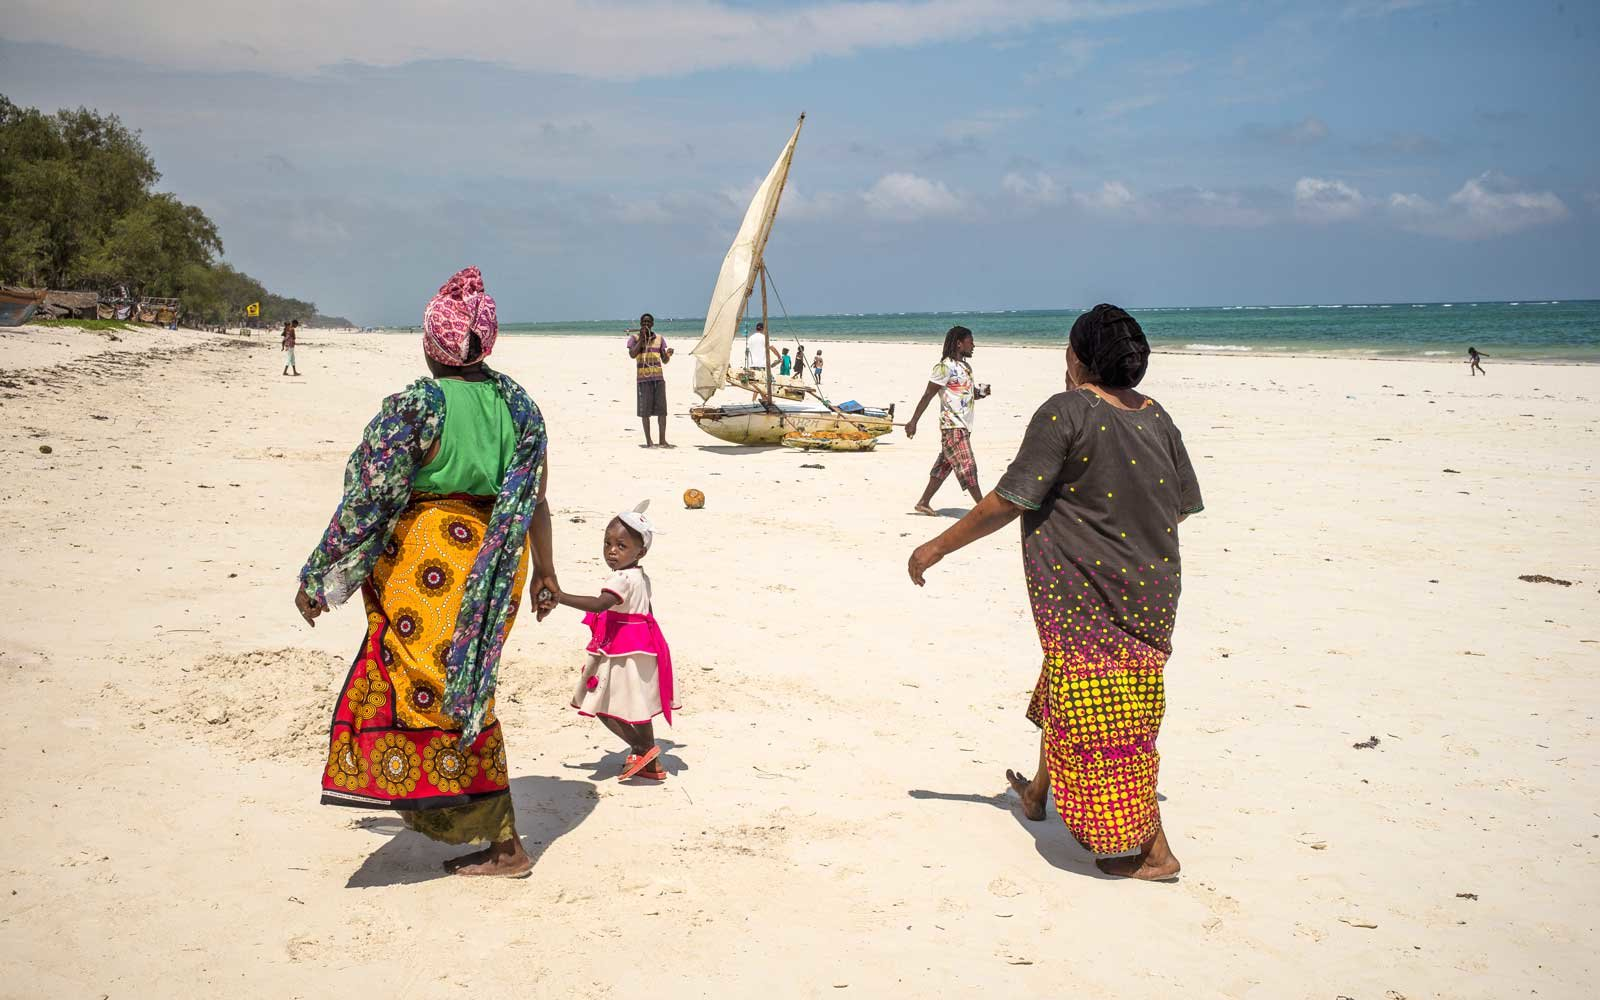 A grandmother and her grandchild walking on Diani Beach, Kenya